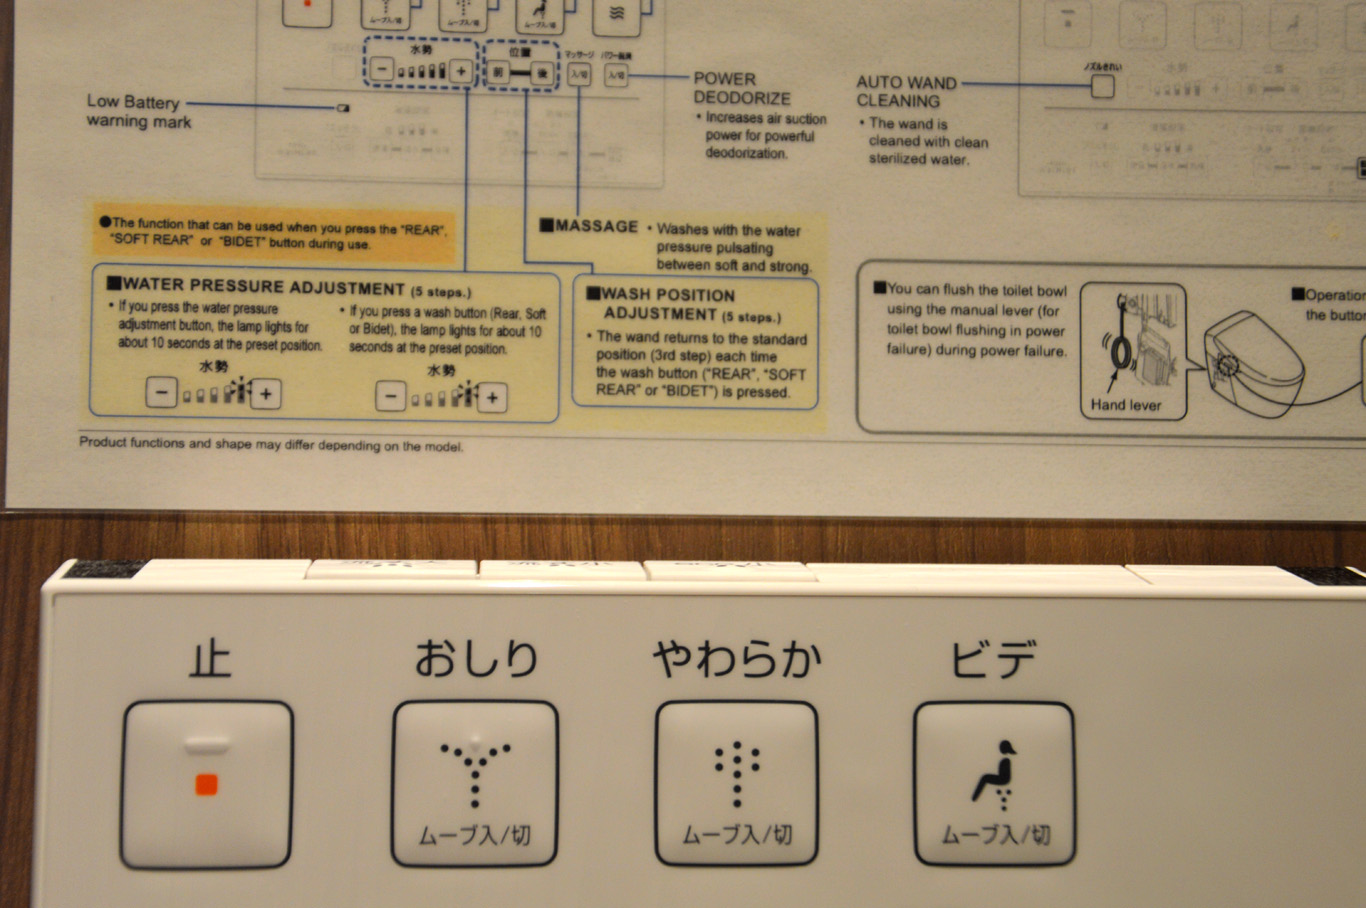 Manual guide on how to use the toilet